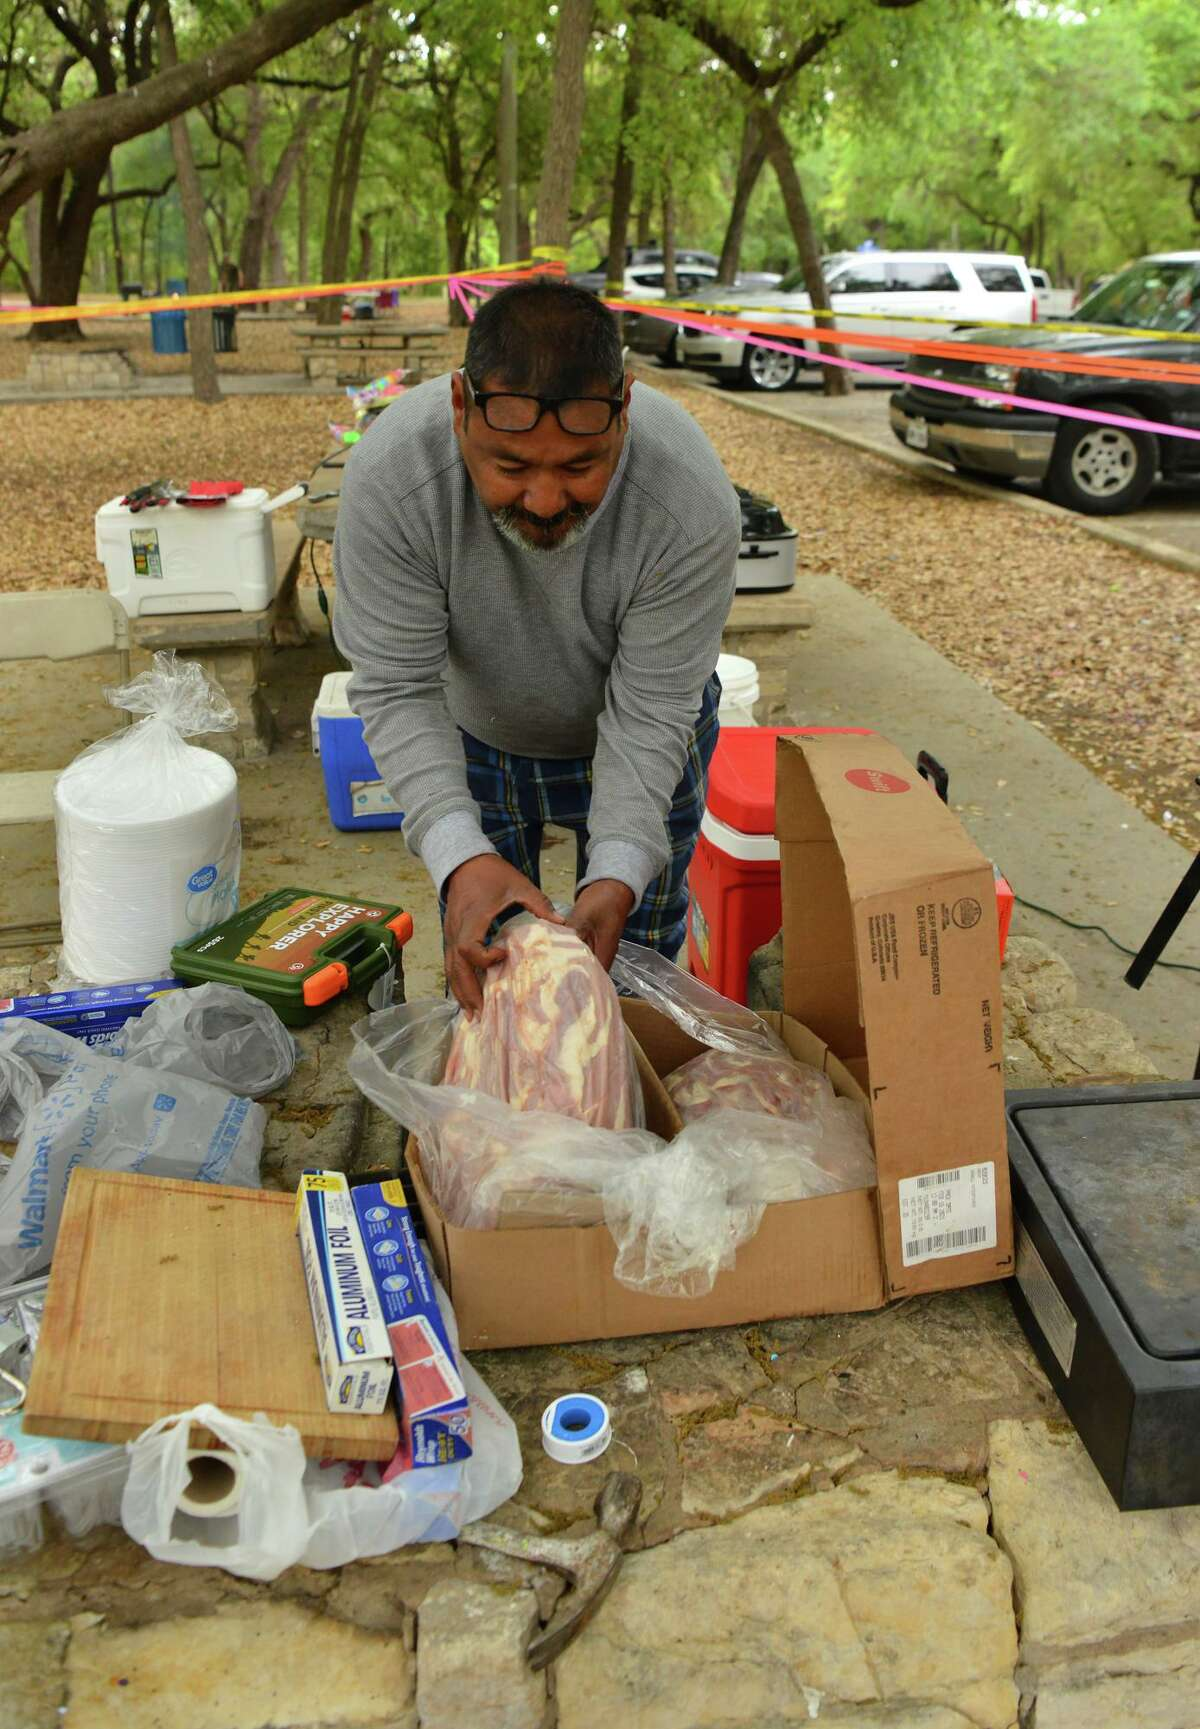 Samuel Rodriguez prepares his fripa's during an Easter Sunday barbeque in Brackenridge.